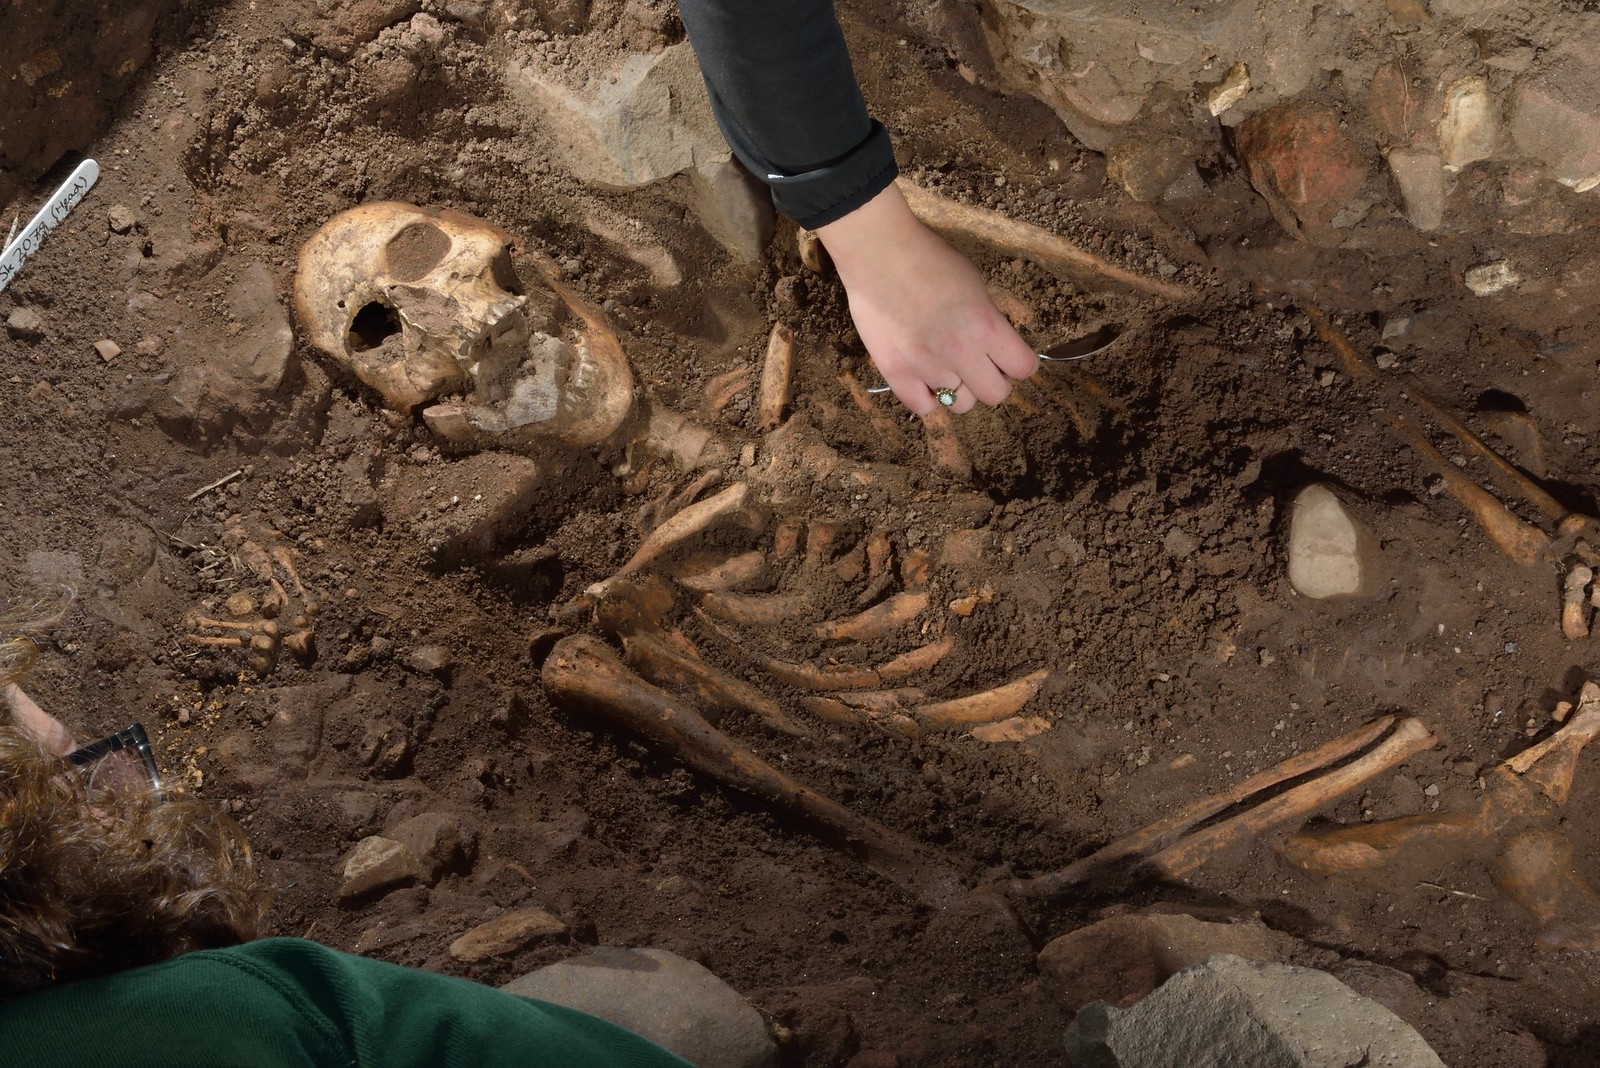 Skeleton in the ground that is in the process of being excavated